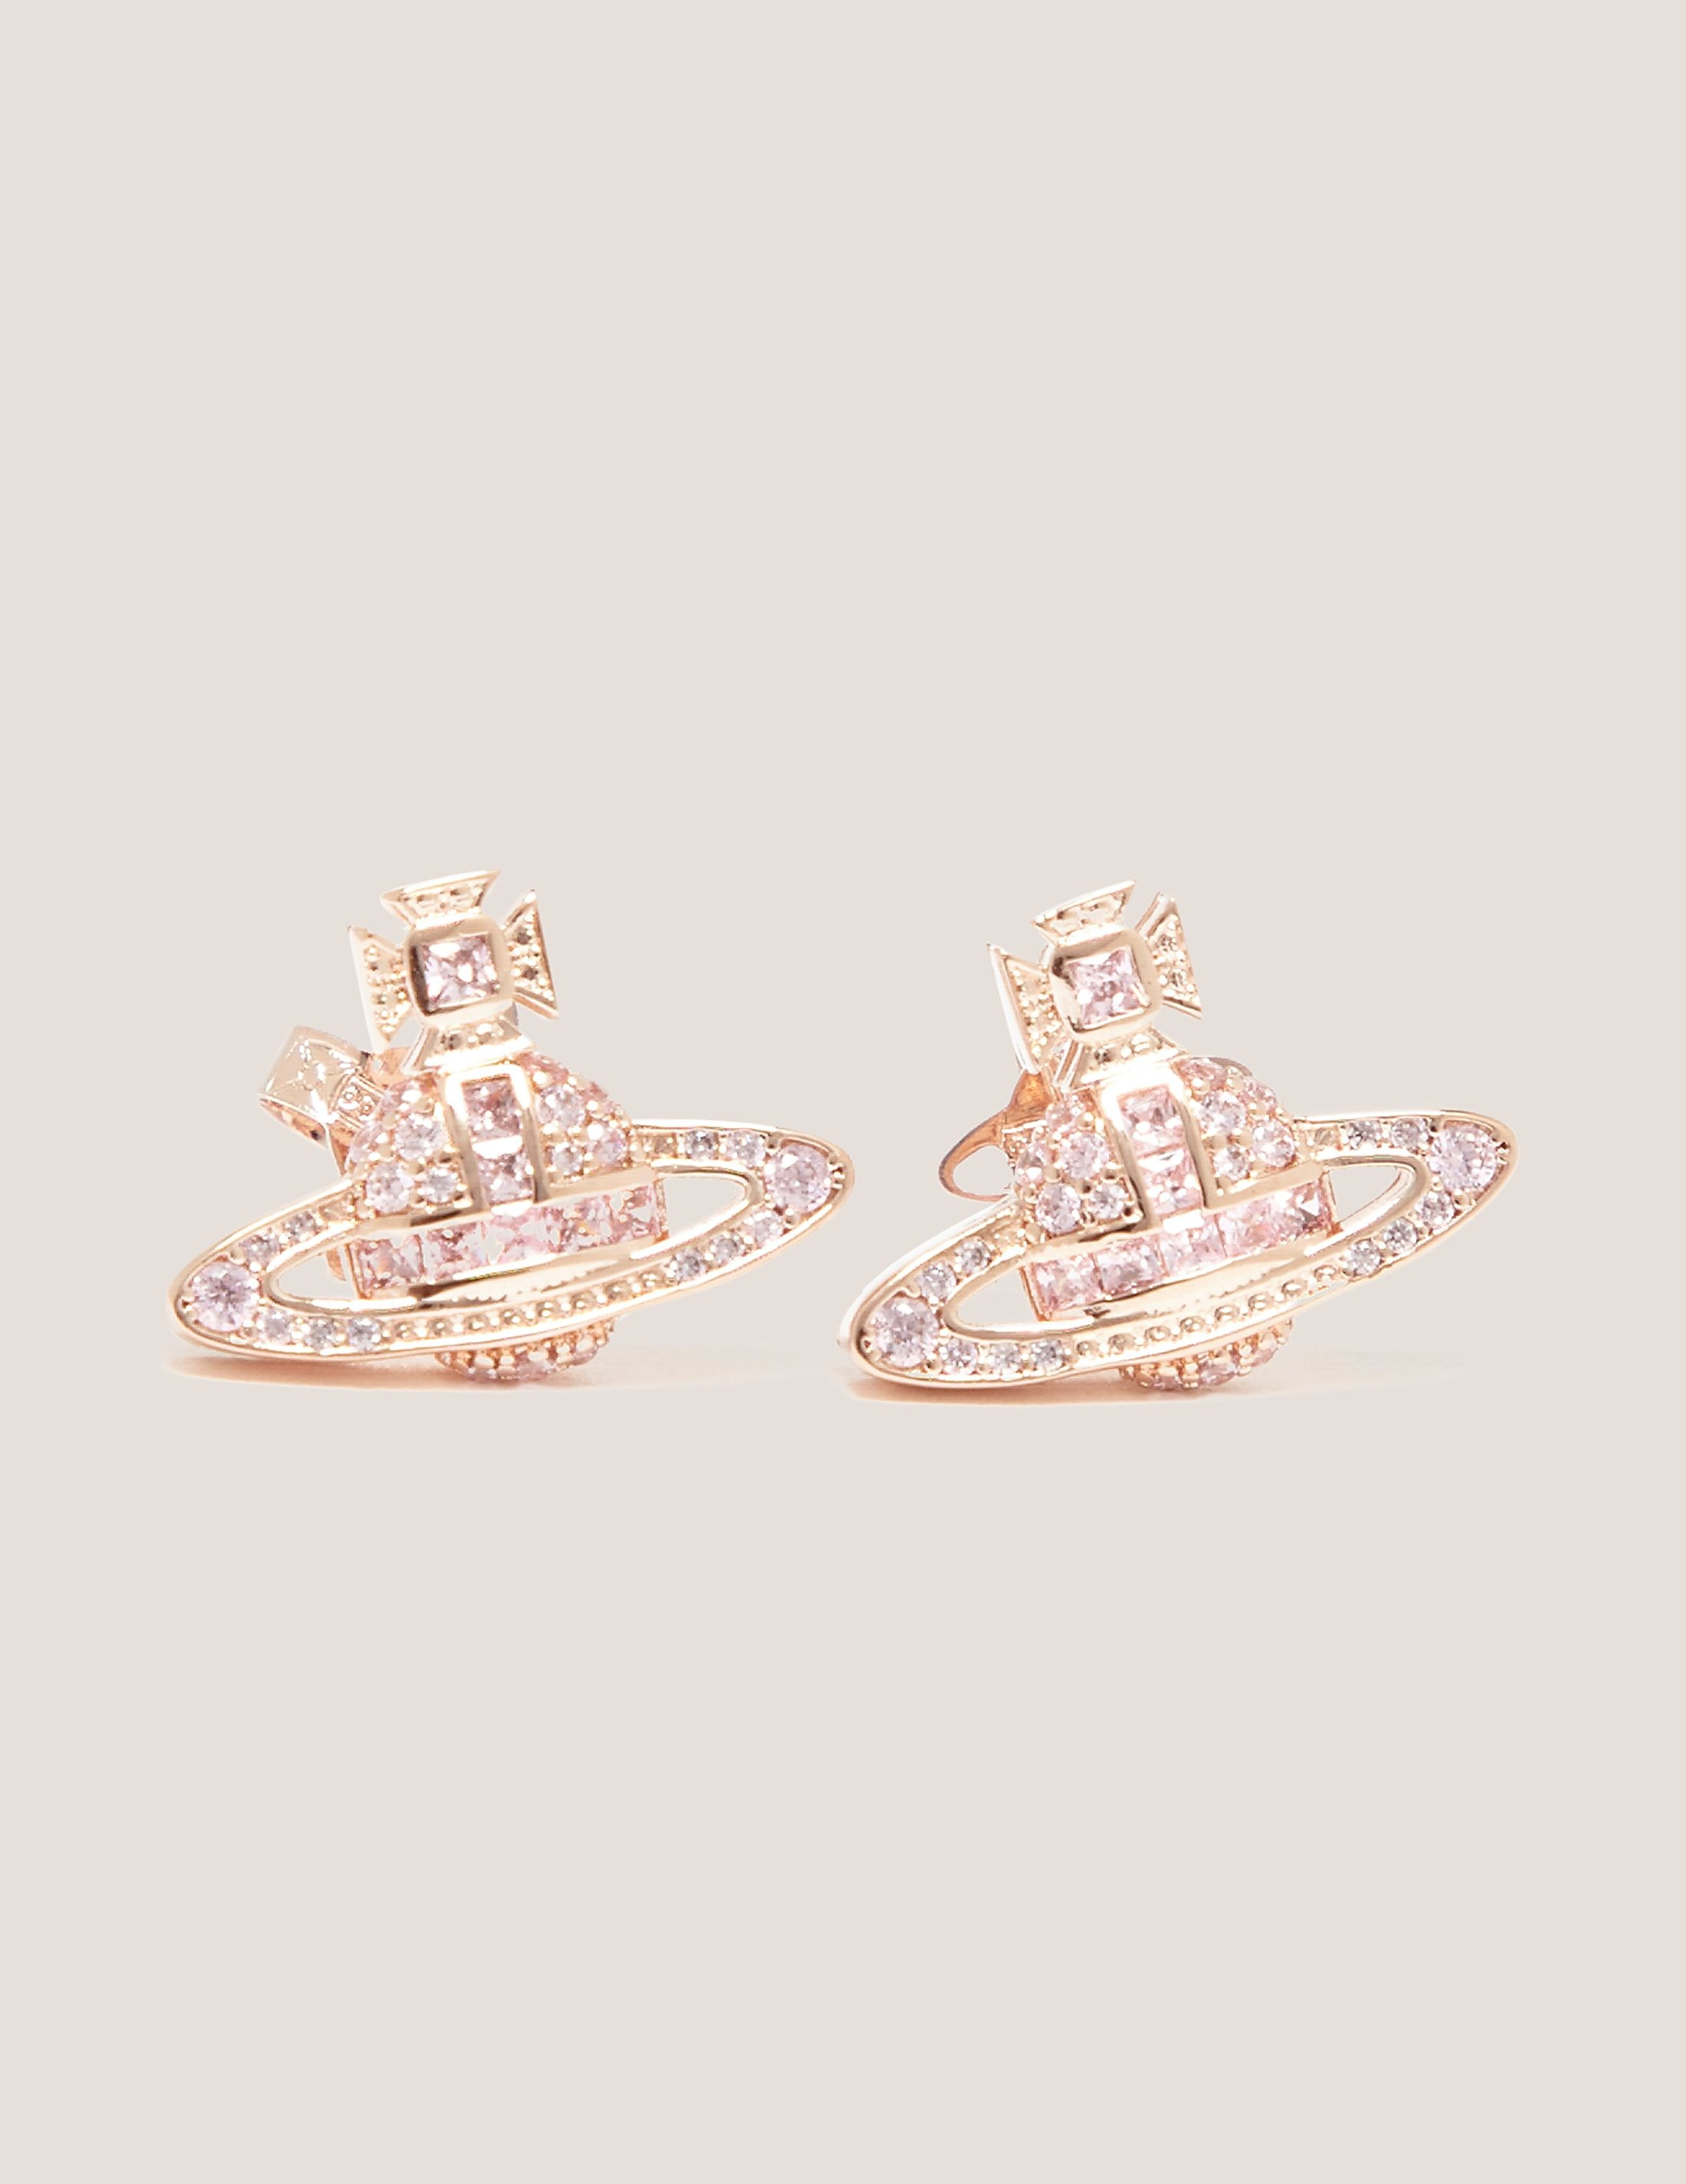 Vivienne Westwood Clotilde Earrings